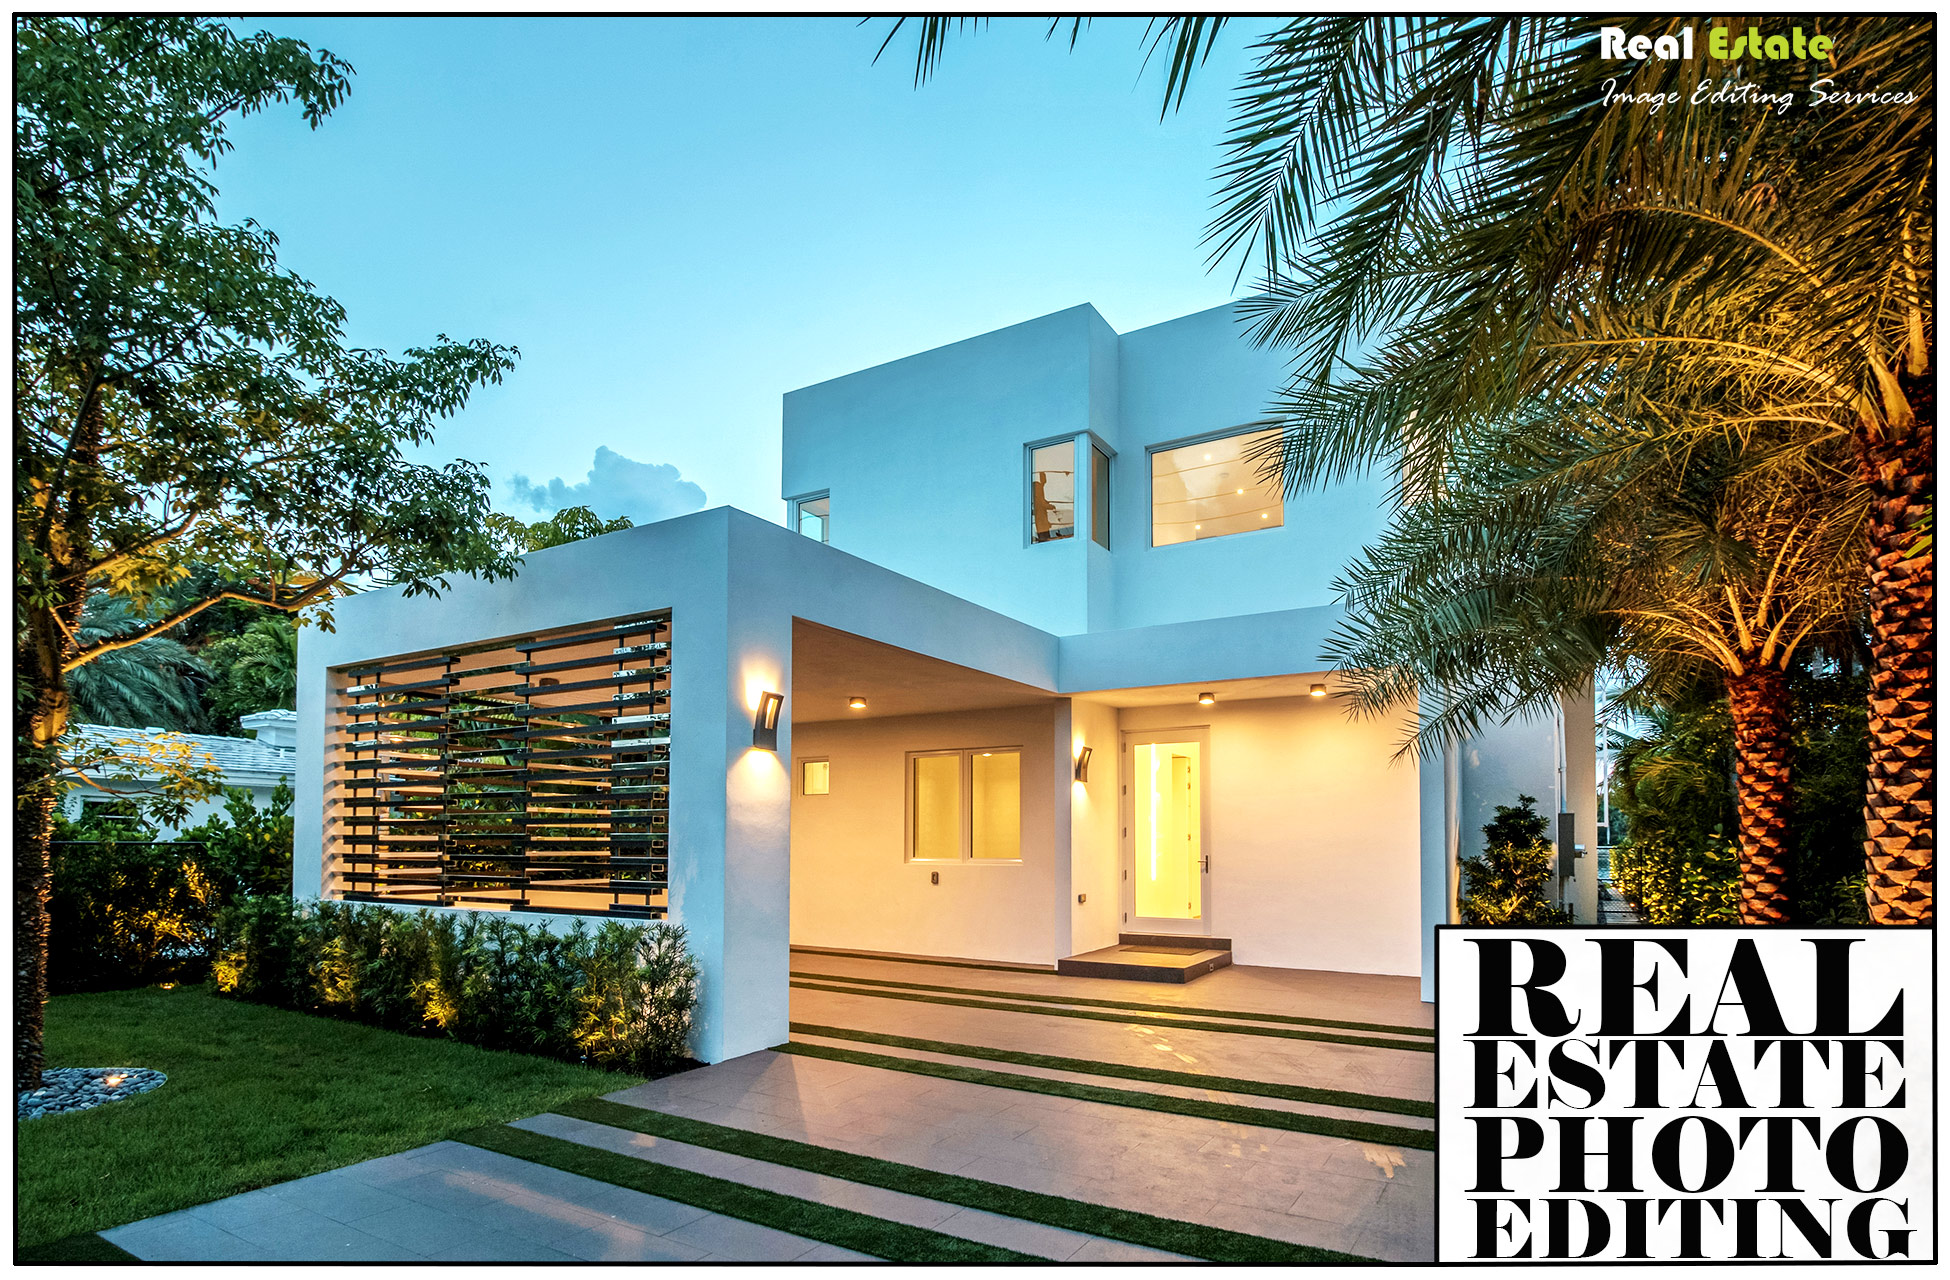 photo editing services real estate